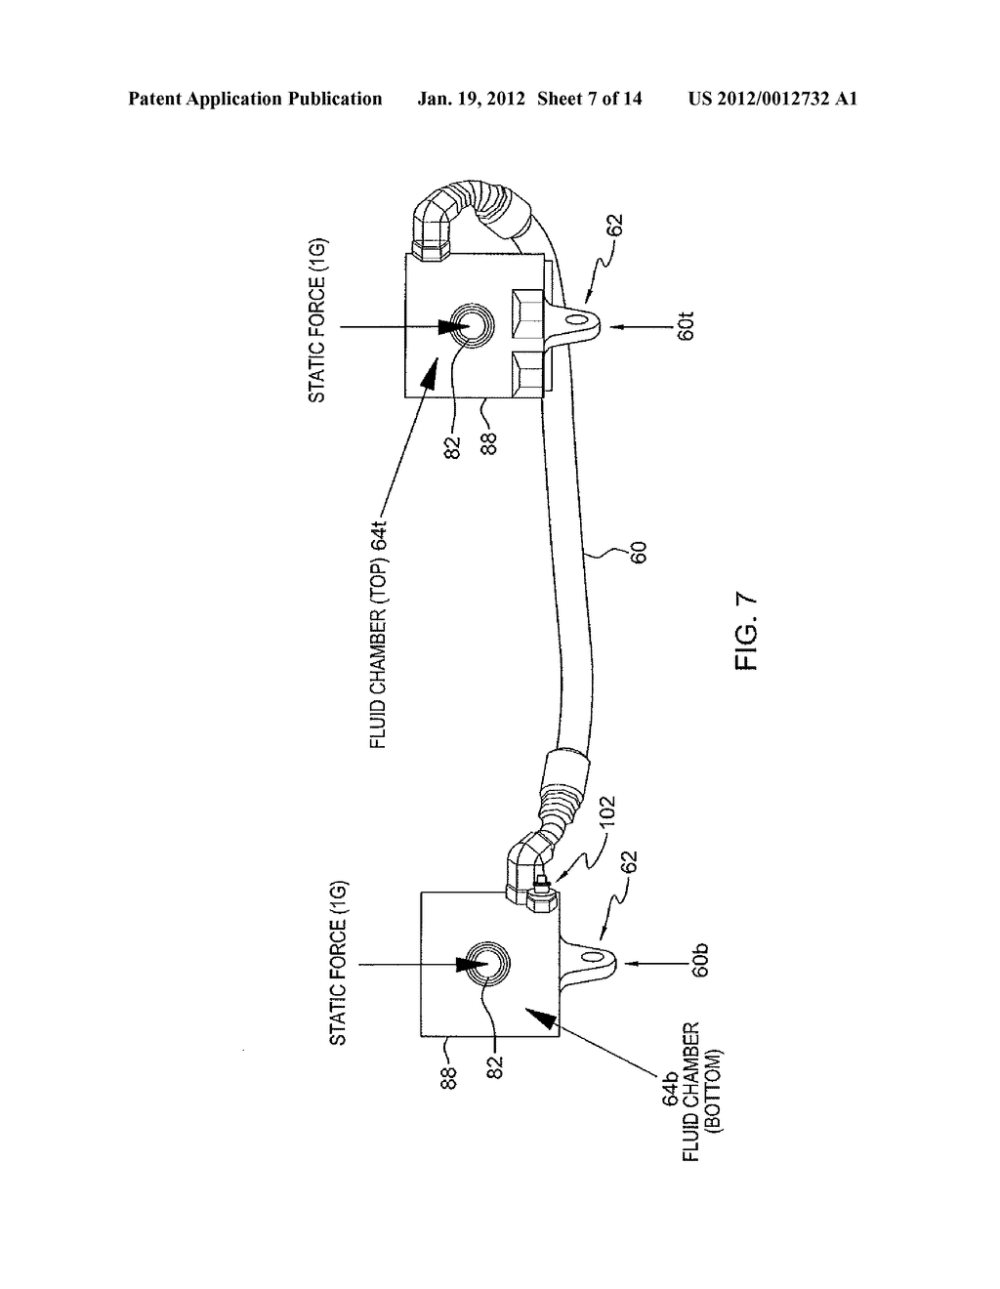 medium resolution of helicopter engine mounting system and methods diagram schematic and image 08